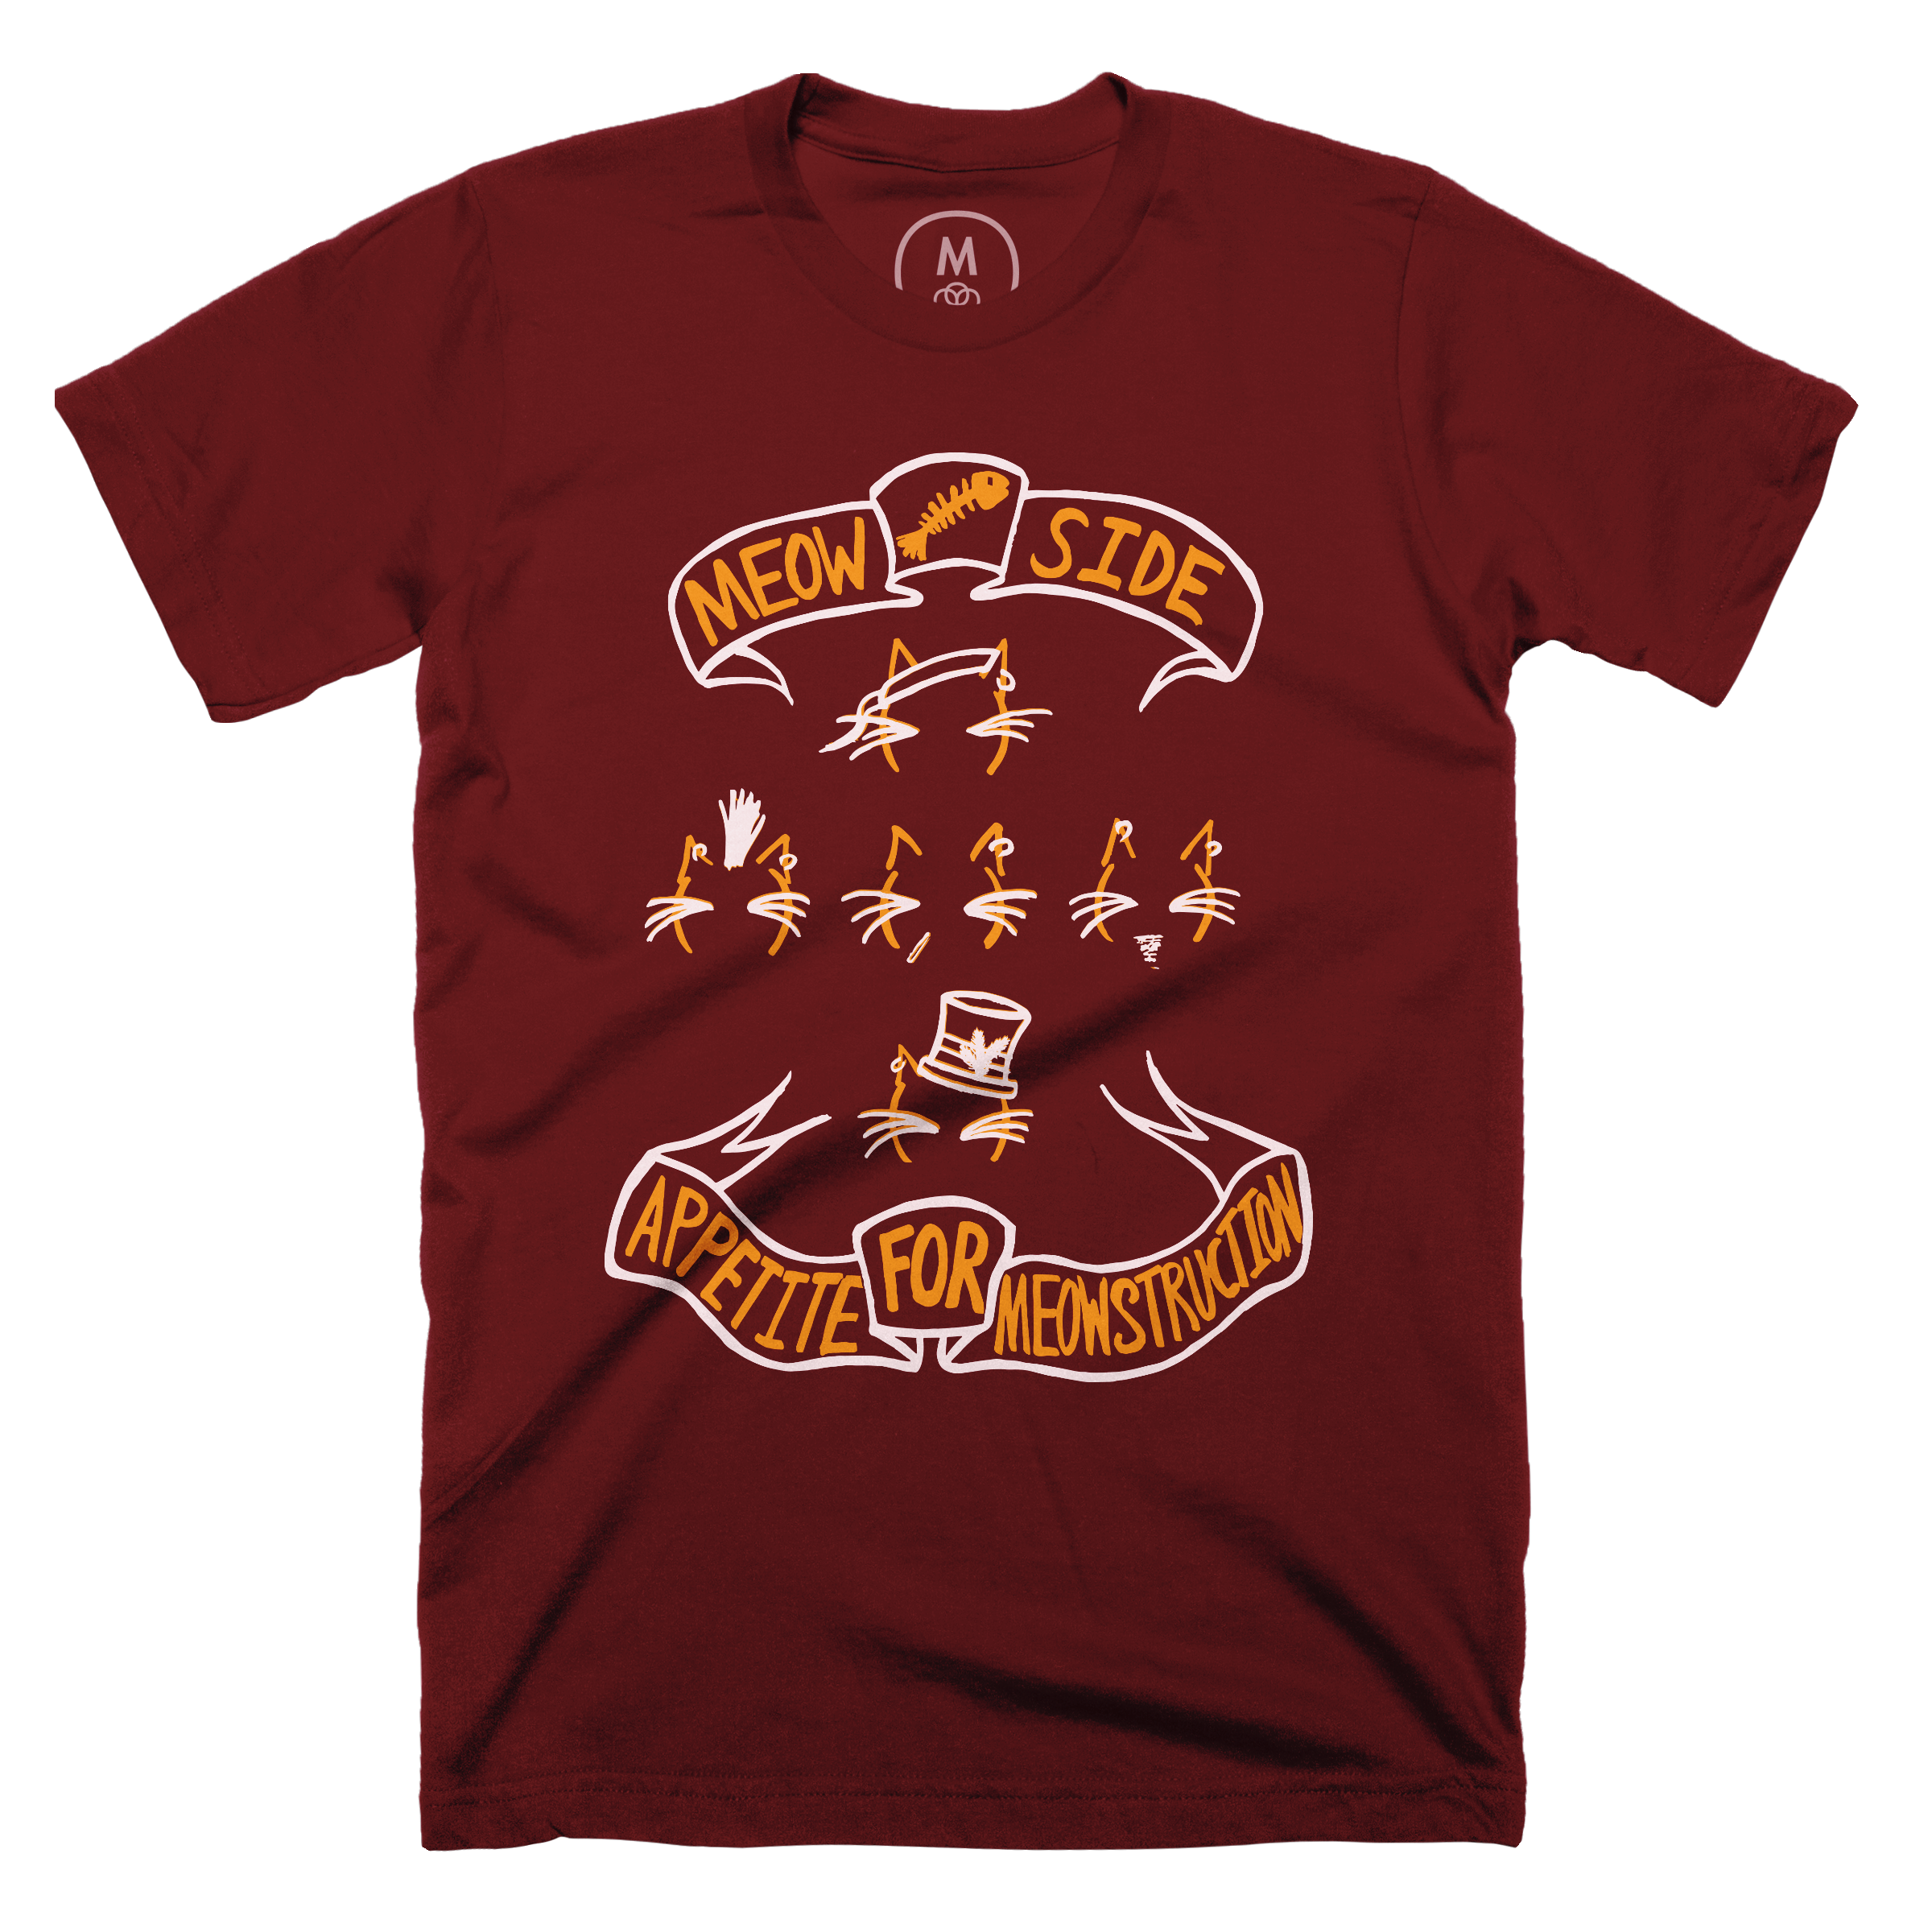 Appetite for Meowstruction Maroon (Men's)